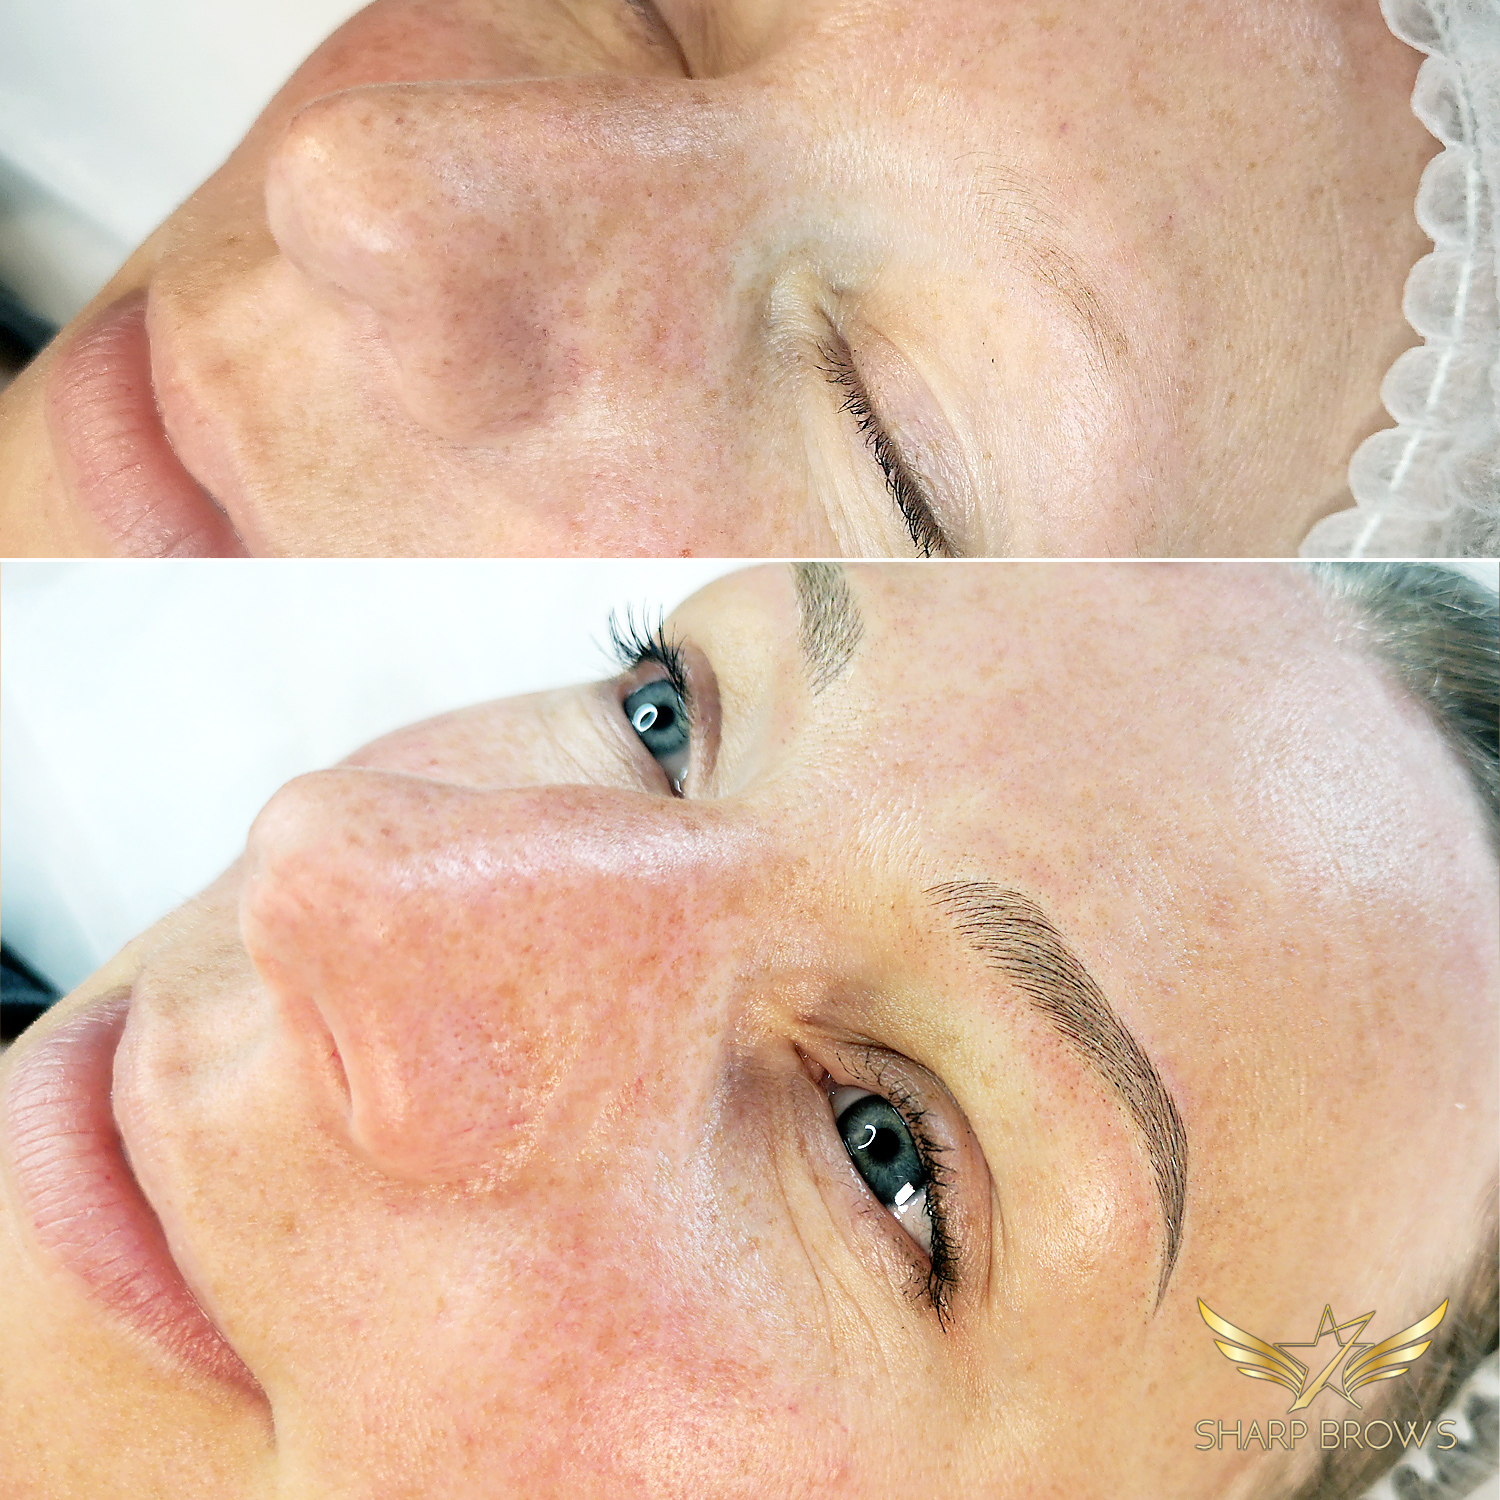 From total zero to light microblading brow. Incredible change that had to be started from a very weak situation.